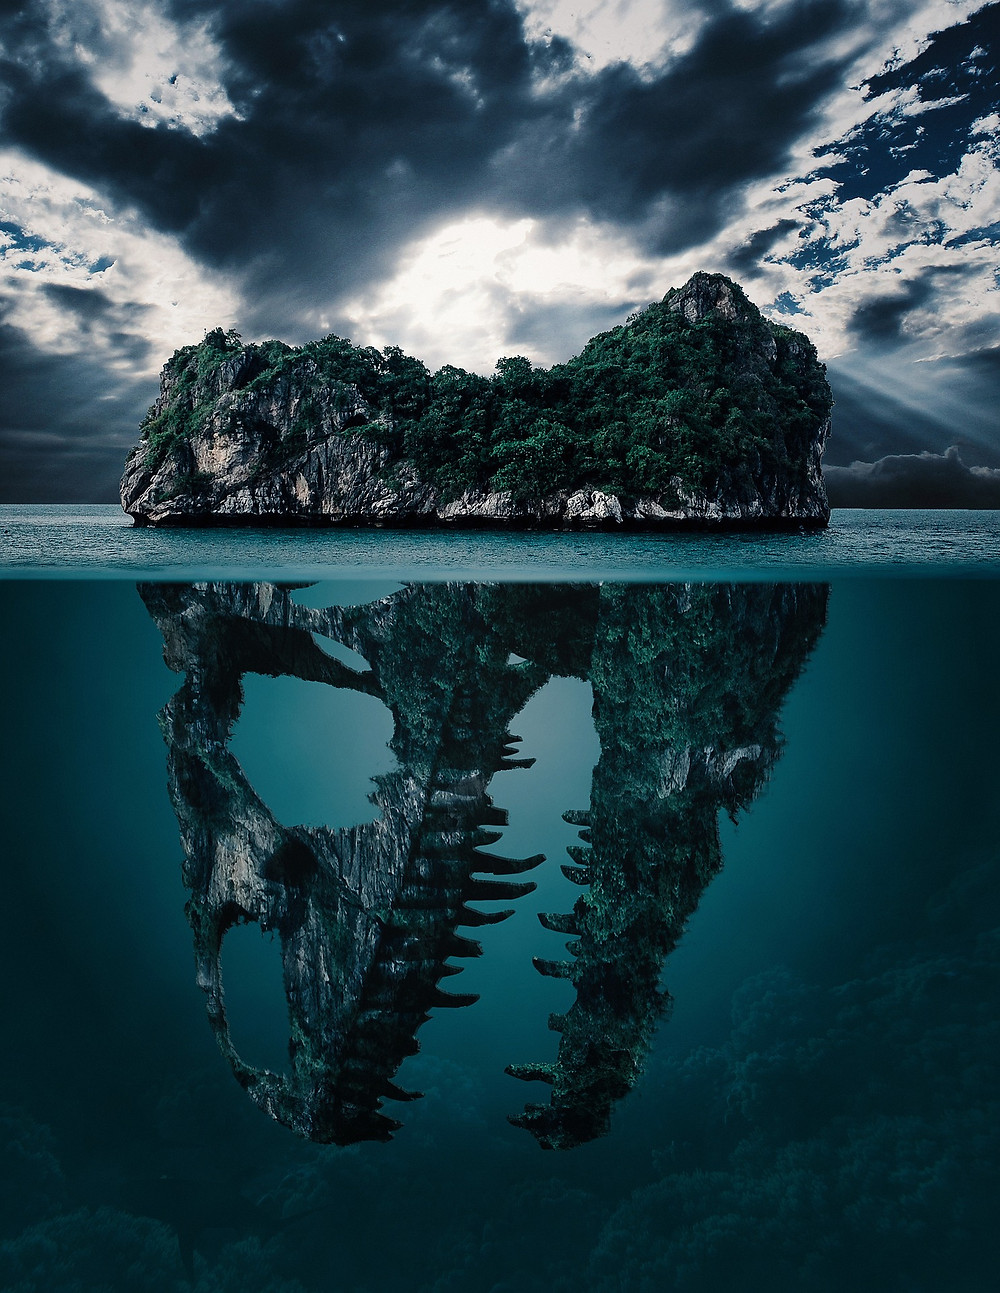 An artist concept imagination graphically designs an island that looks like a Dinosaur skull